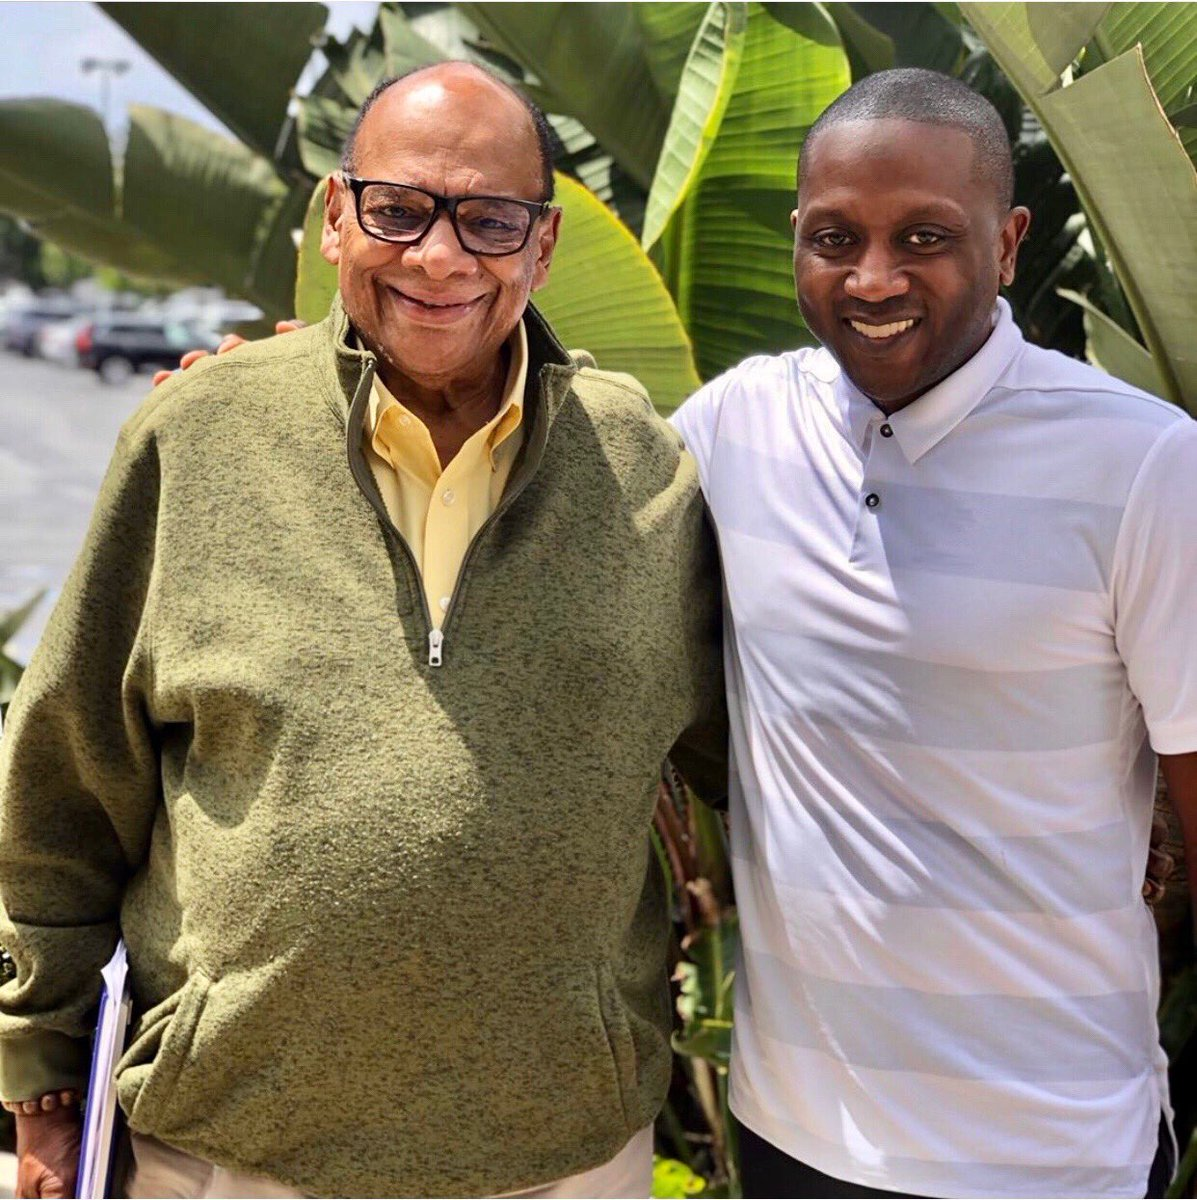 Happy Birthday @GeorgeRaveling Thank you for always pouring into my life! https://t.co/7hnvC8MQws https://t.co/hfUw3mBPLW